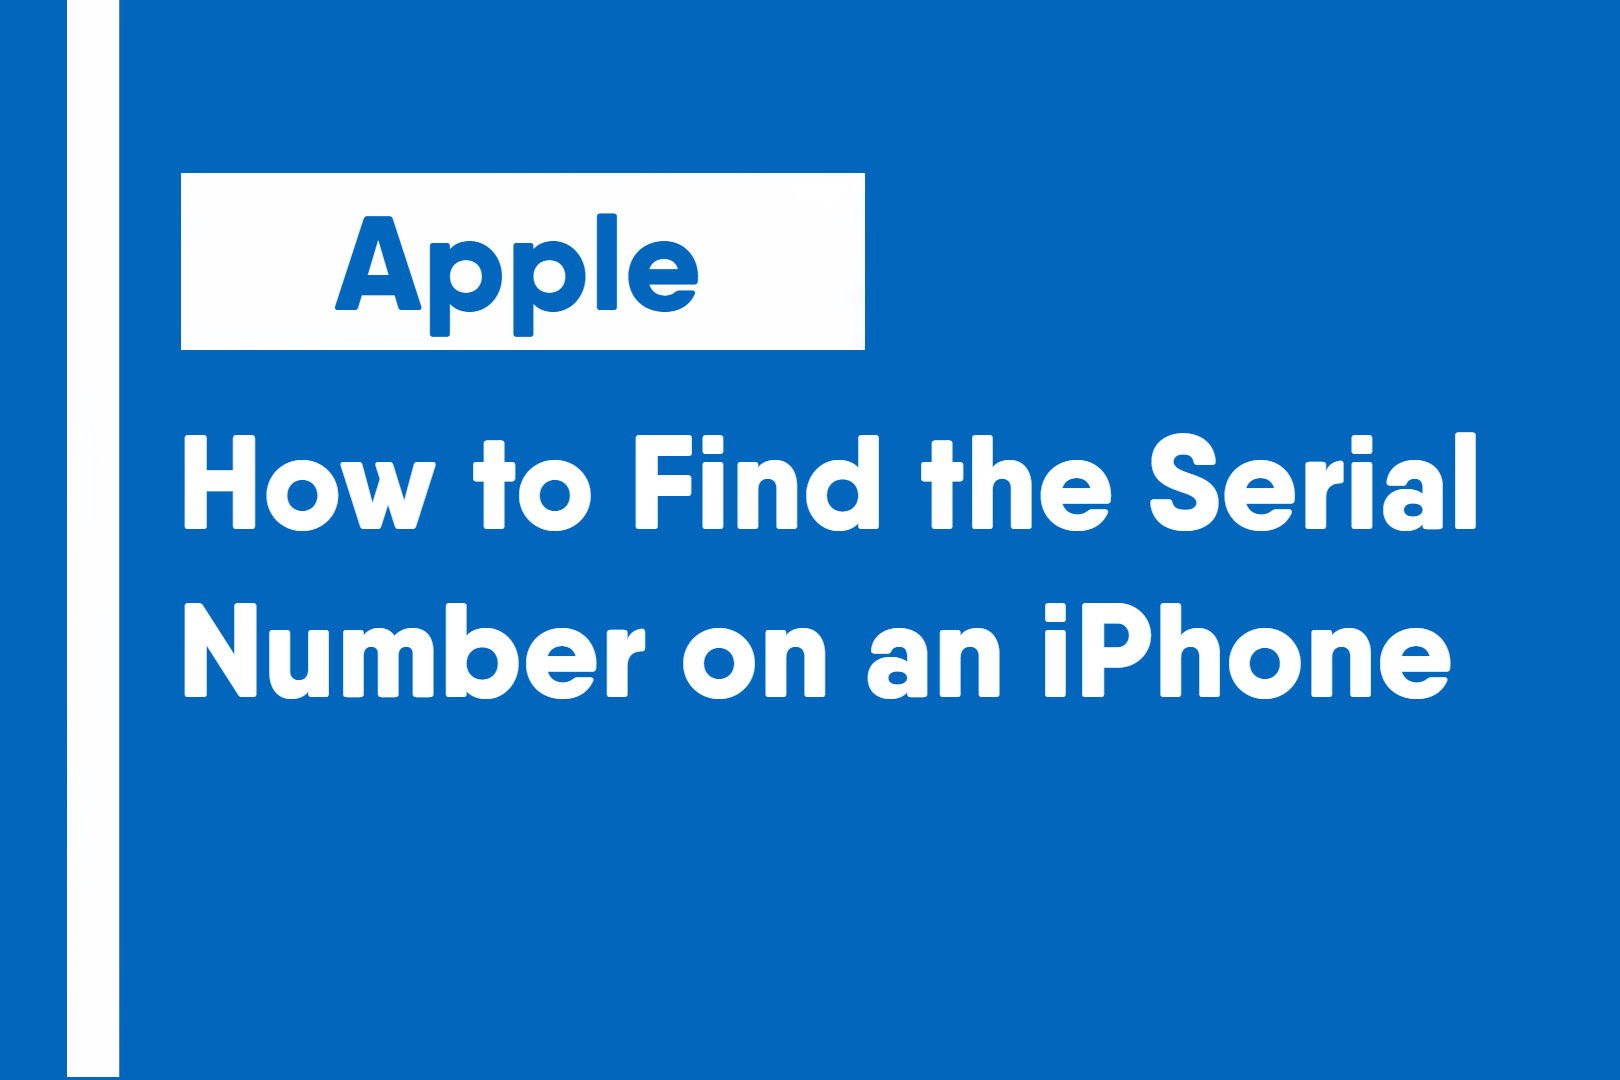 How to Find the Serial Number on an iPhone